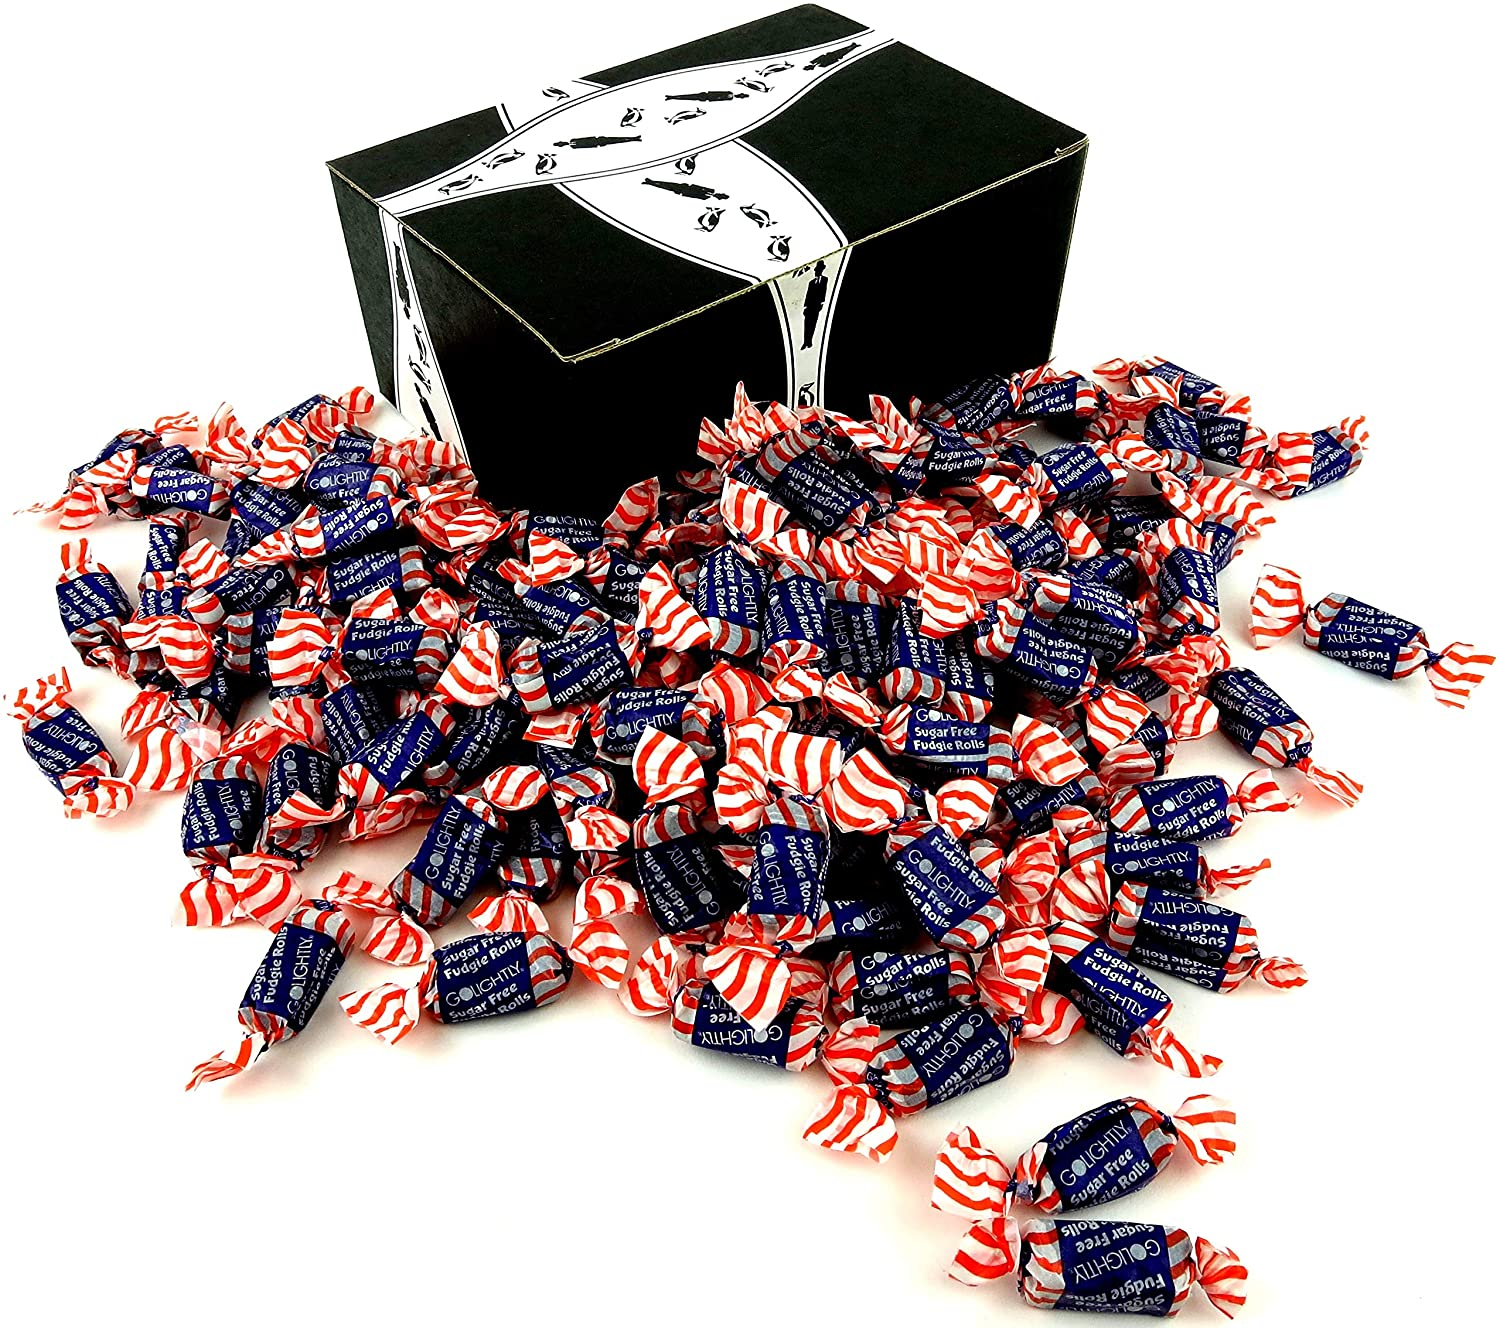 Outlet sale feature GoLightly Sugar Free Fudgie Rolls 3 lb in Popular brand in the world Box a Bag BlackTie